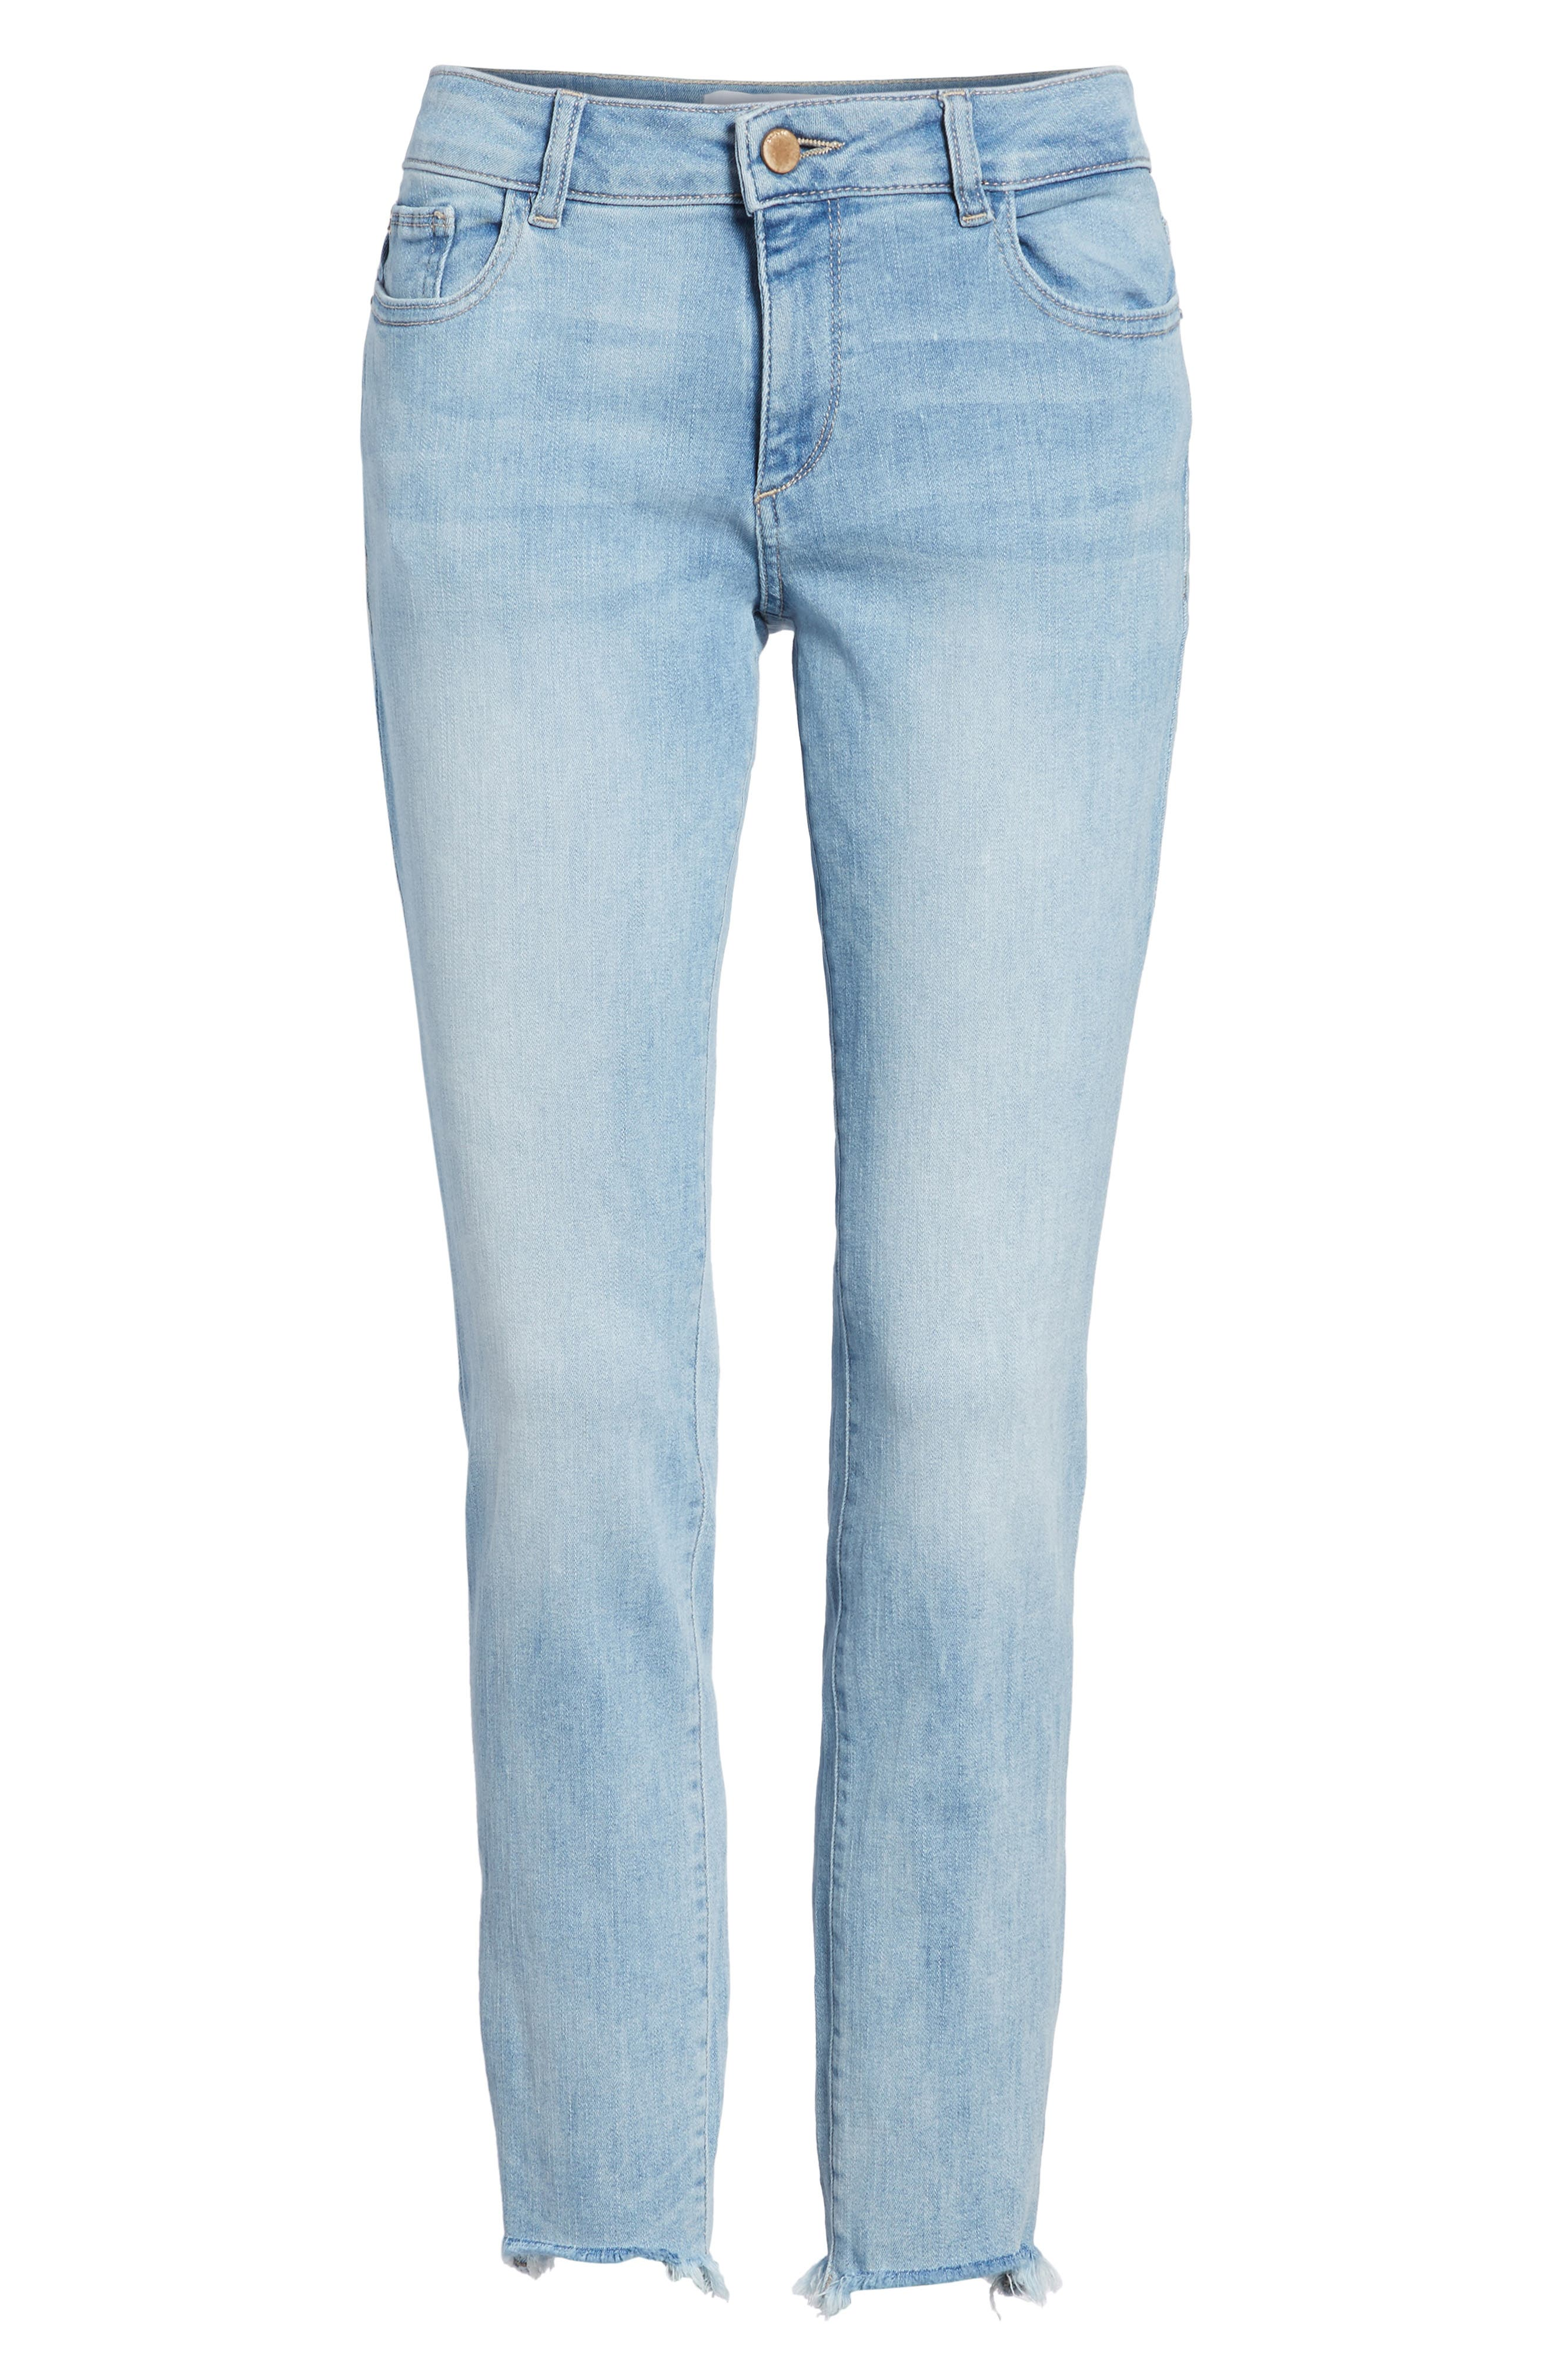 Coco Curvy Ankle Skinny Jeans,                             Alternate thumbnail 6, color,                             Kelso